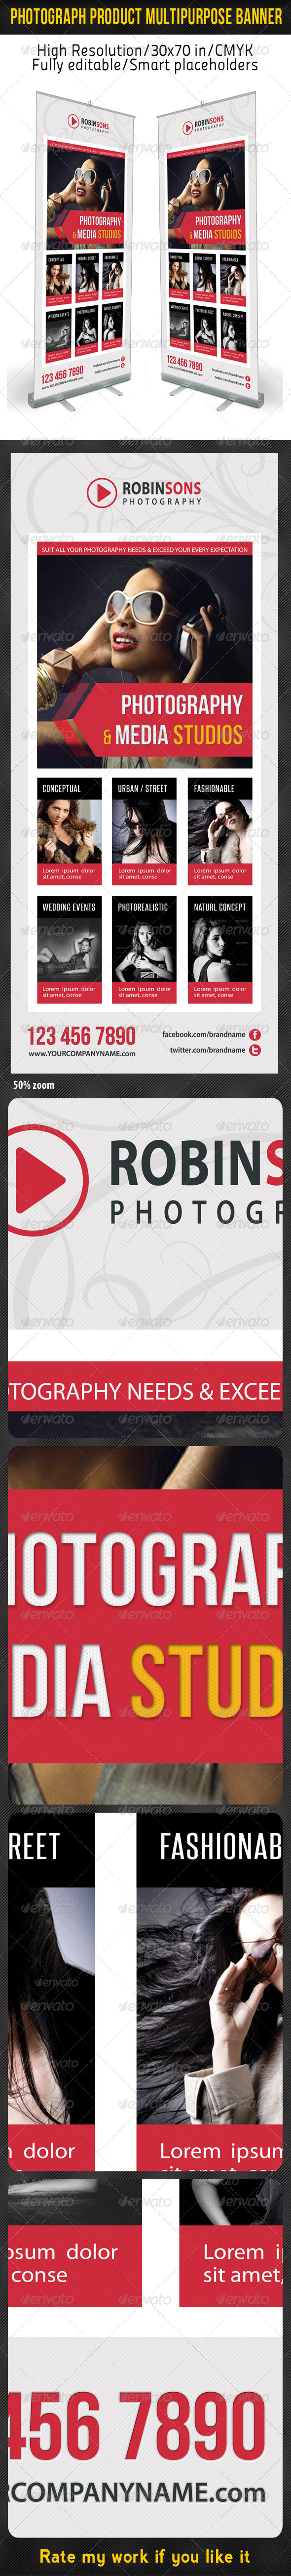 Photograph Product Multipurpose Banner 07 - Signage Print Templates